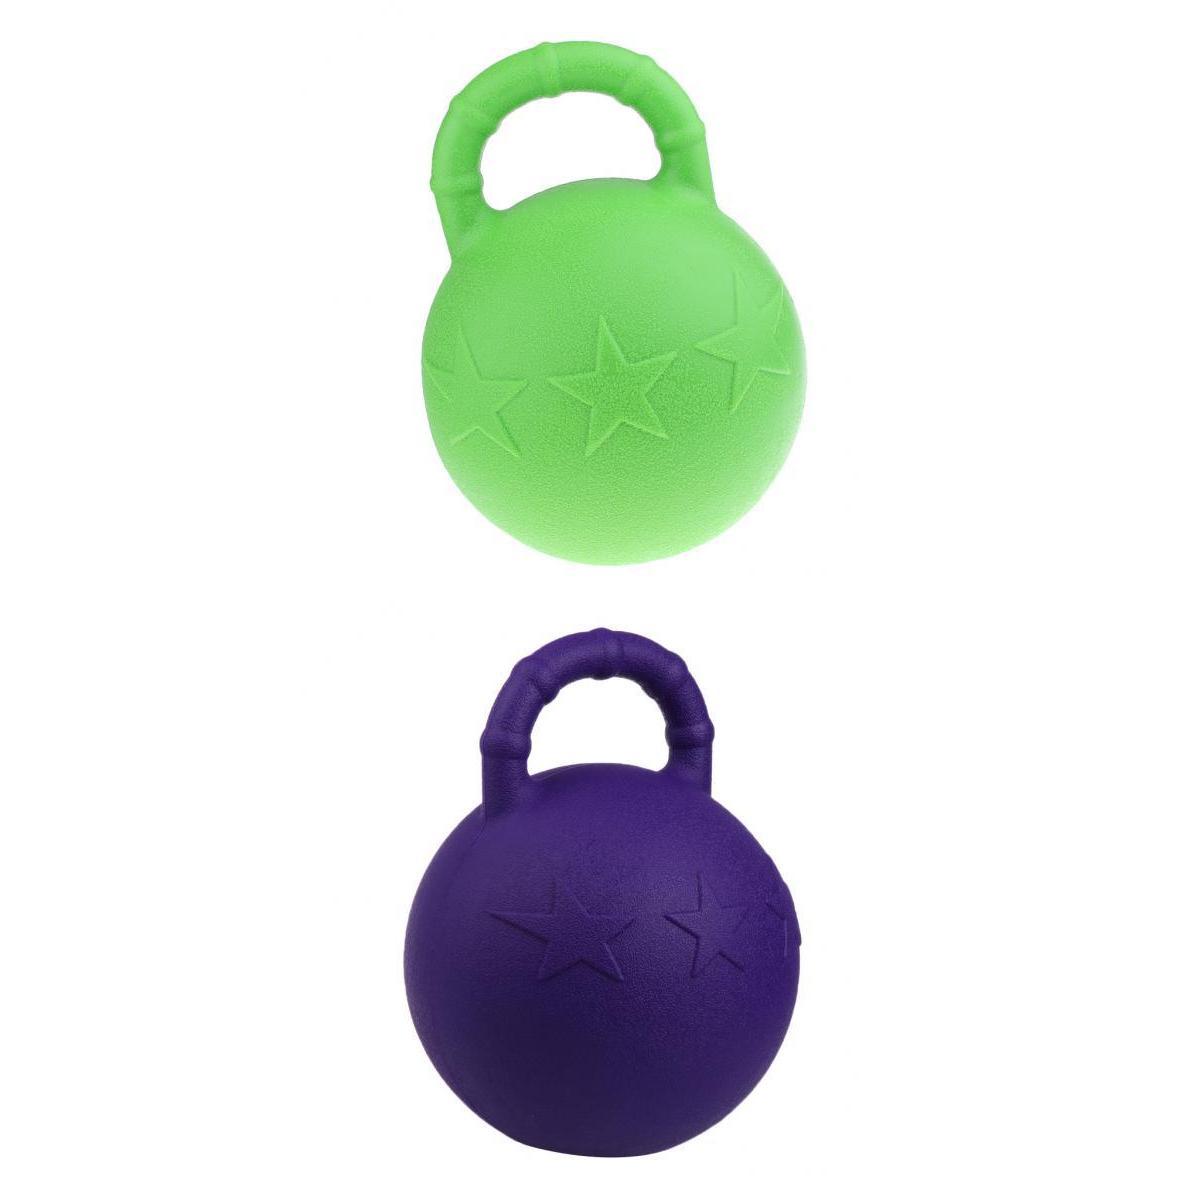 Equine Rubber Jolly Ball Fruit Scented For Training Horse Dog, Juggling, Game Playing - Pack Of  2